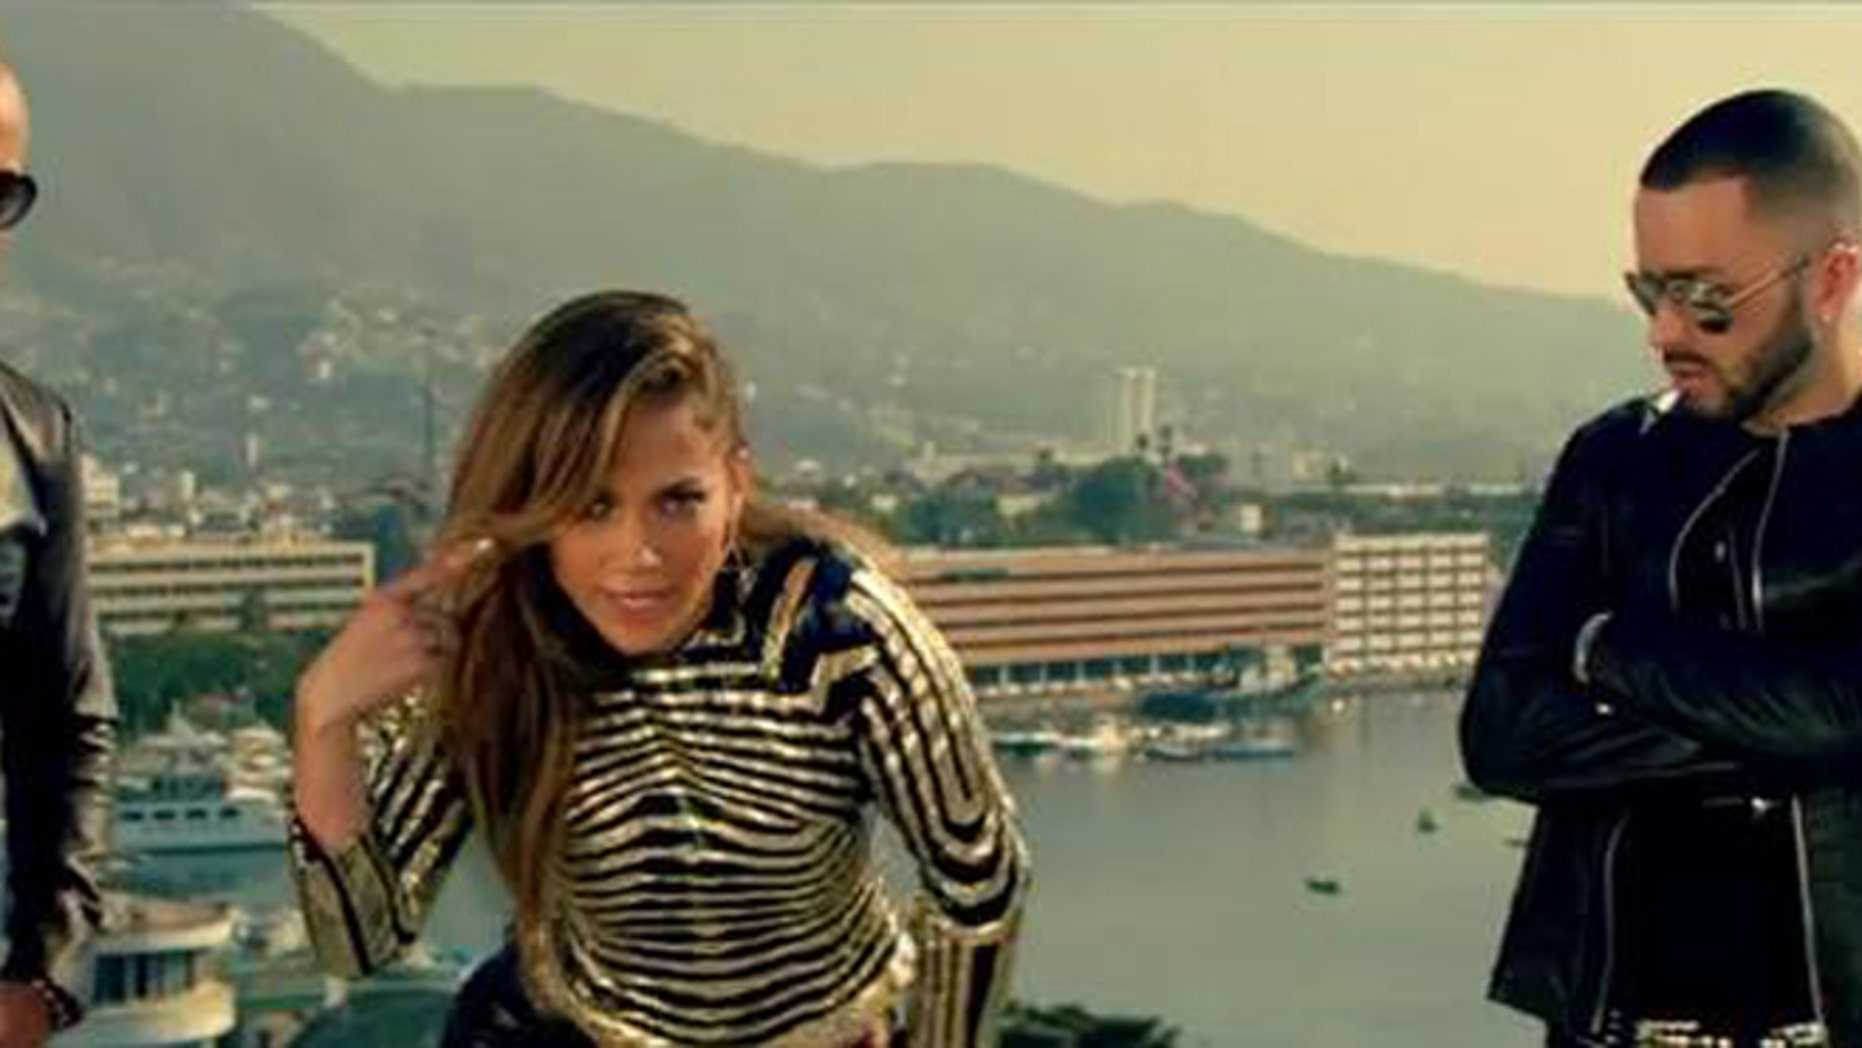 """May 4, 2012: Puerto Rican singers Jennifer Lopez and Wisin y Yandel debuted their new music video for their latest single """"Follow the Leader,"""" Friday on Twitter."""